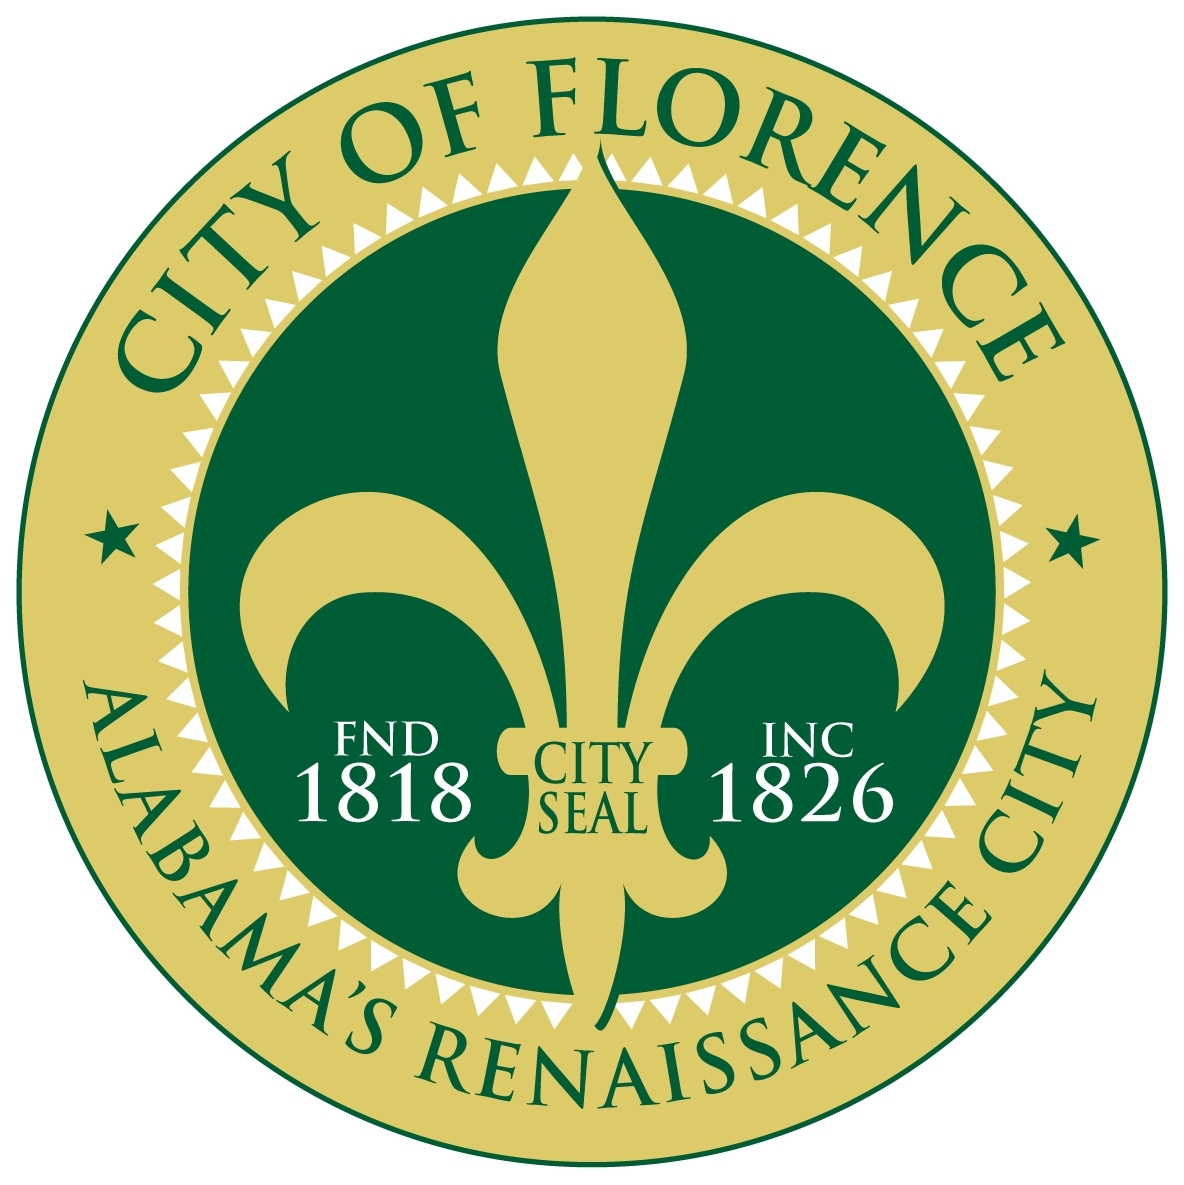 City of Florence Logo.JPG